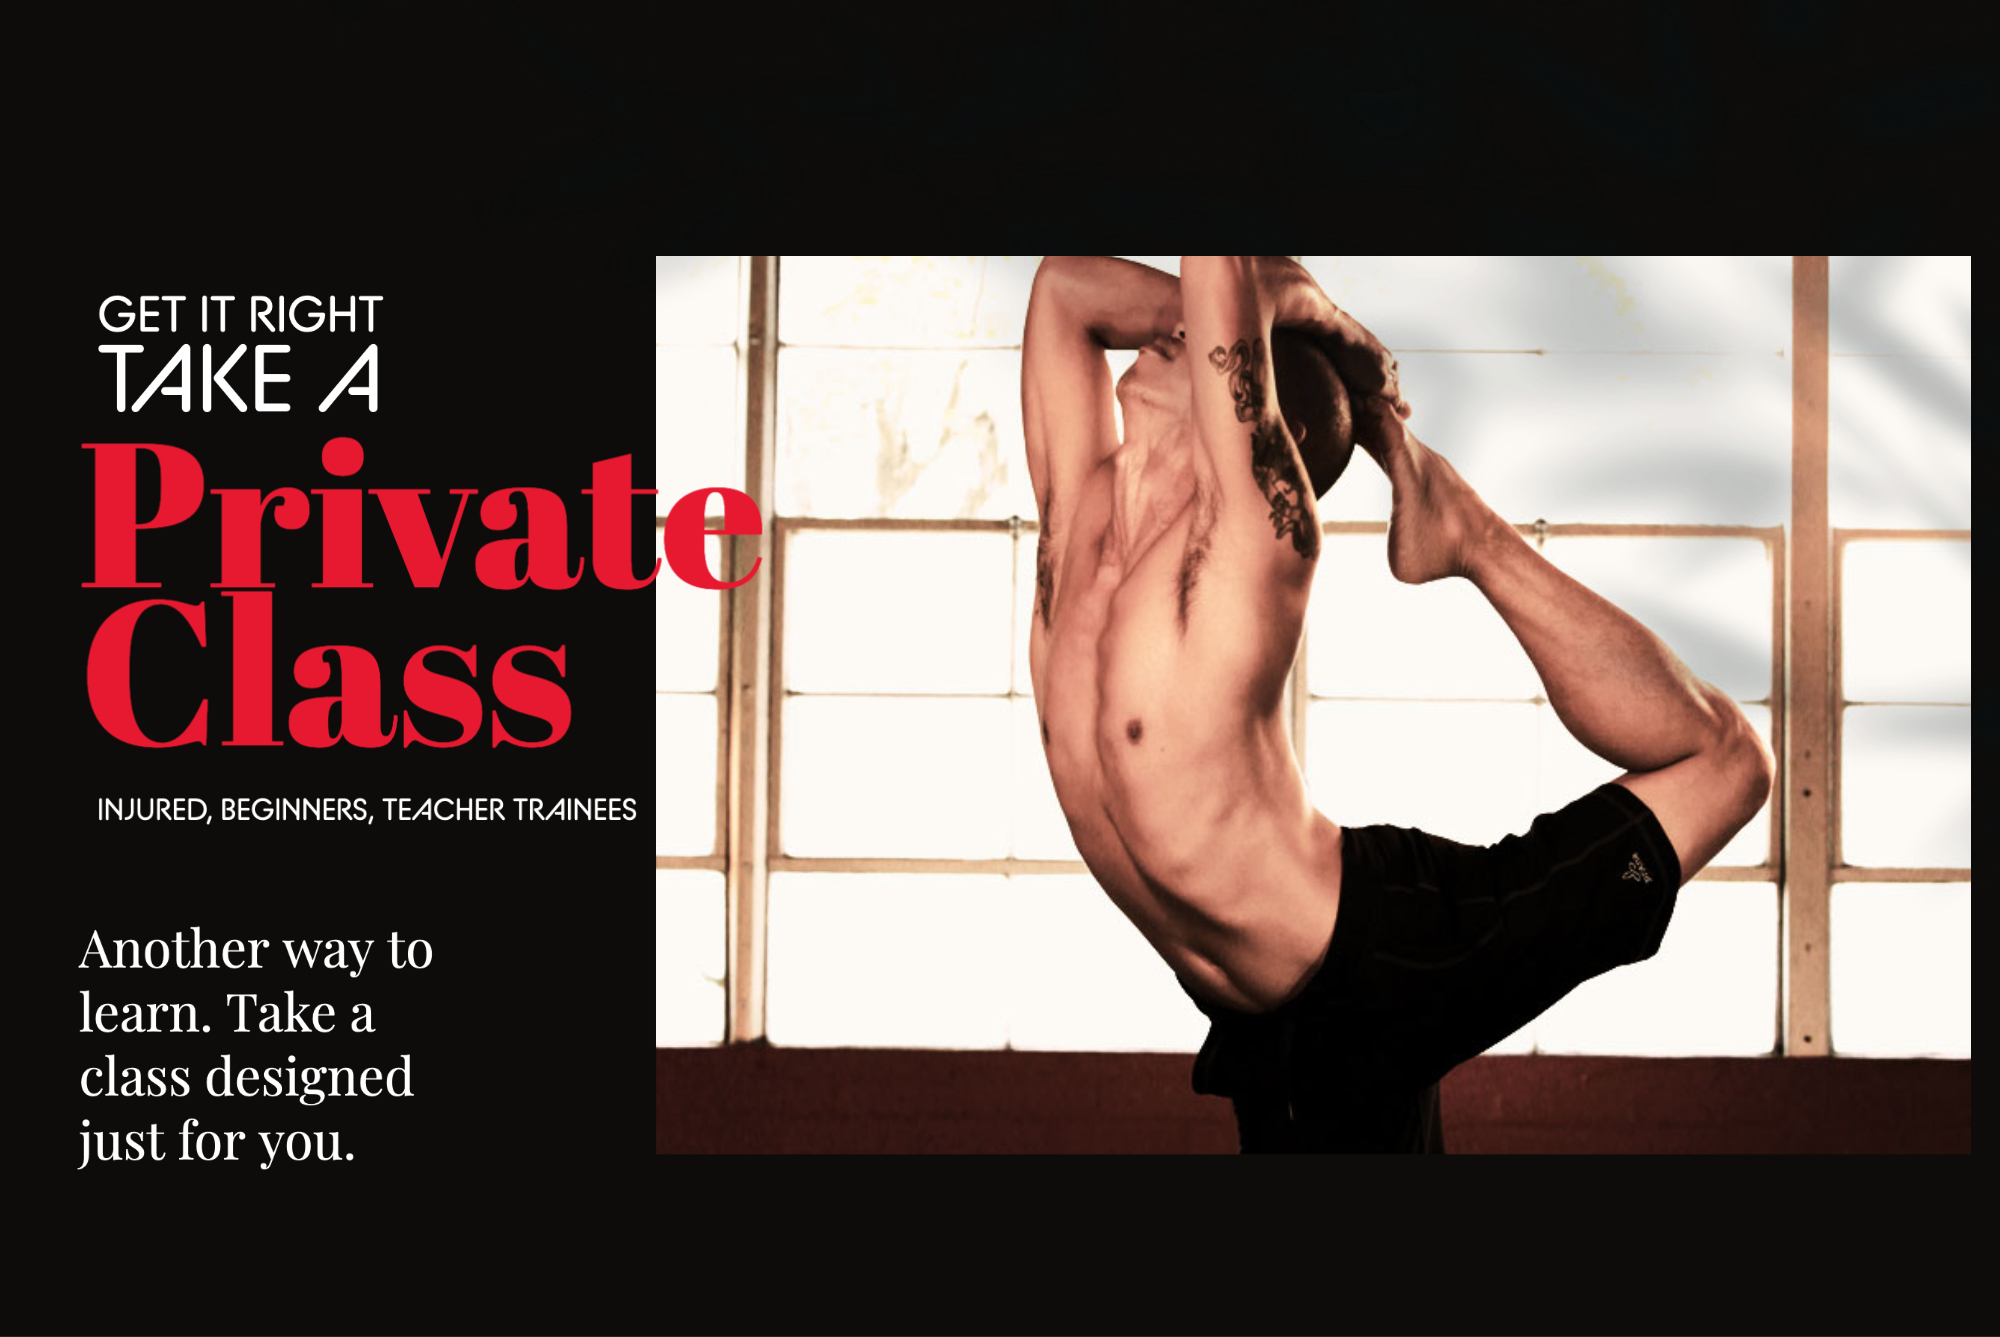 there is another way to learn yoga, private classes.  Great for beginners, injuries and teacher trainees